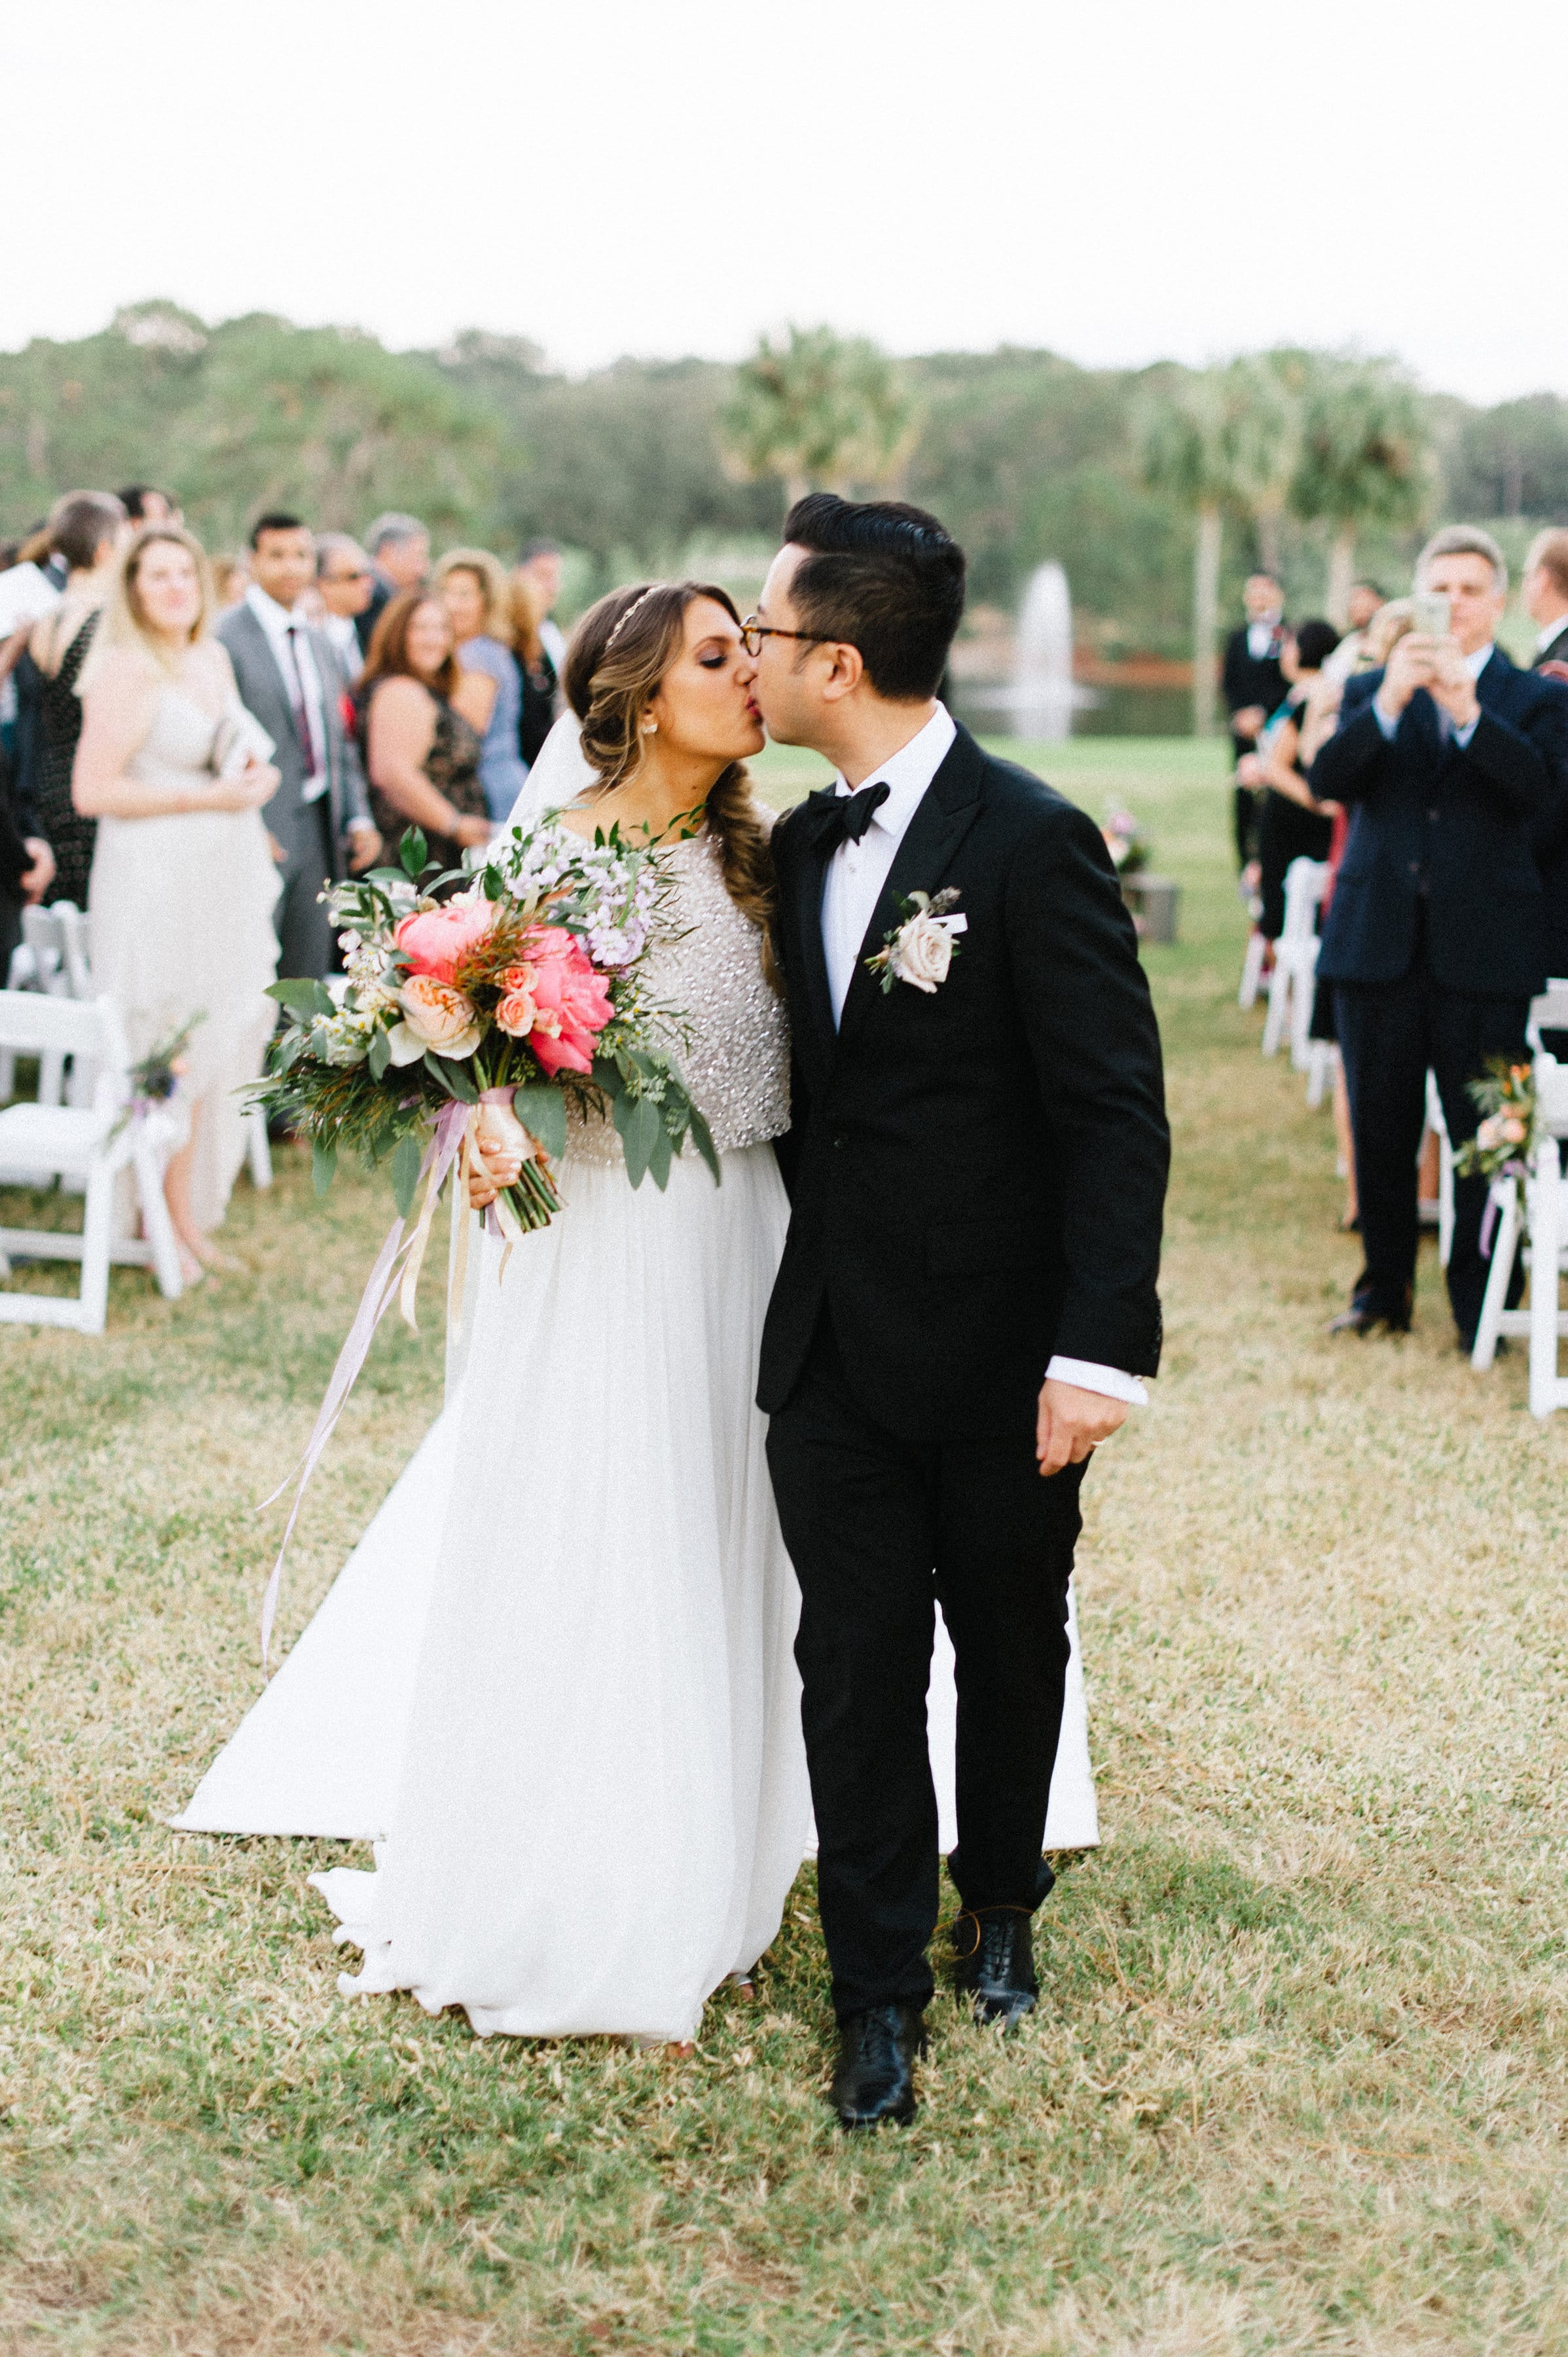 Bride and Groom Kissing while Holding Show Stopping Wedding Bouquet